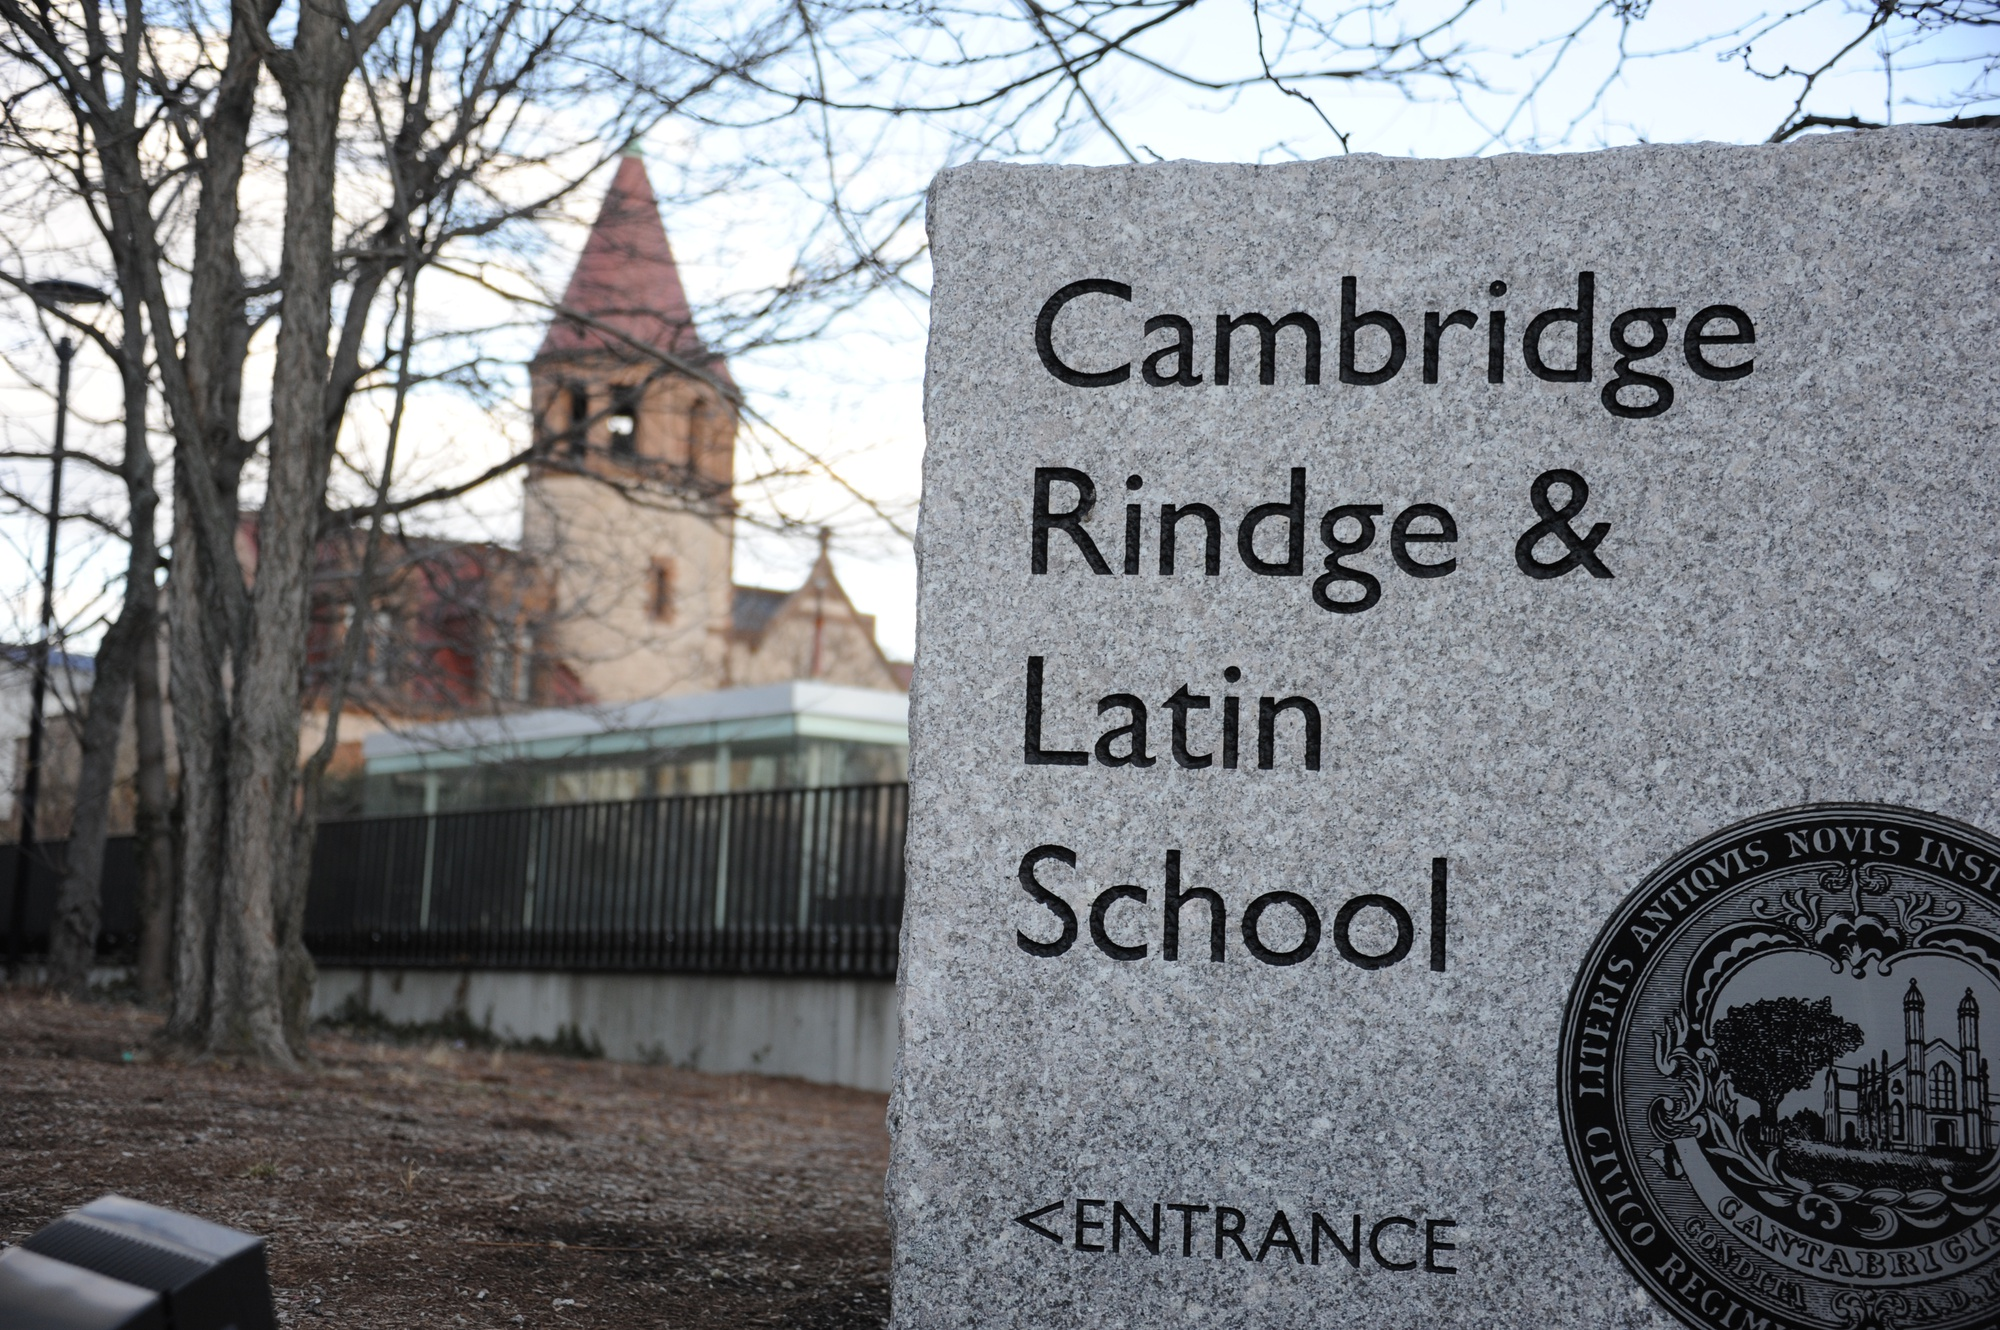 Cambridge Rindge and Latin School is the only traditional public high school in the Cambridge School District.